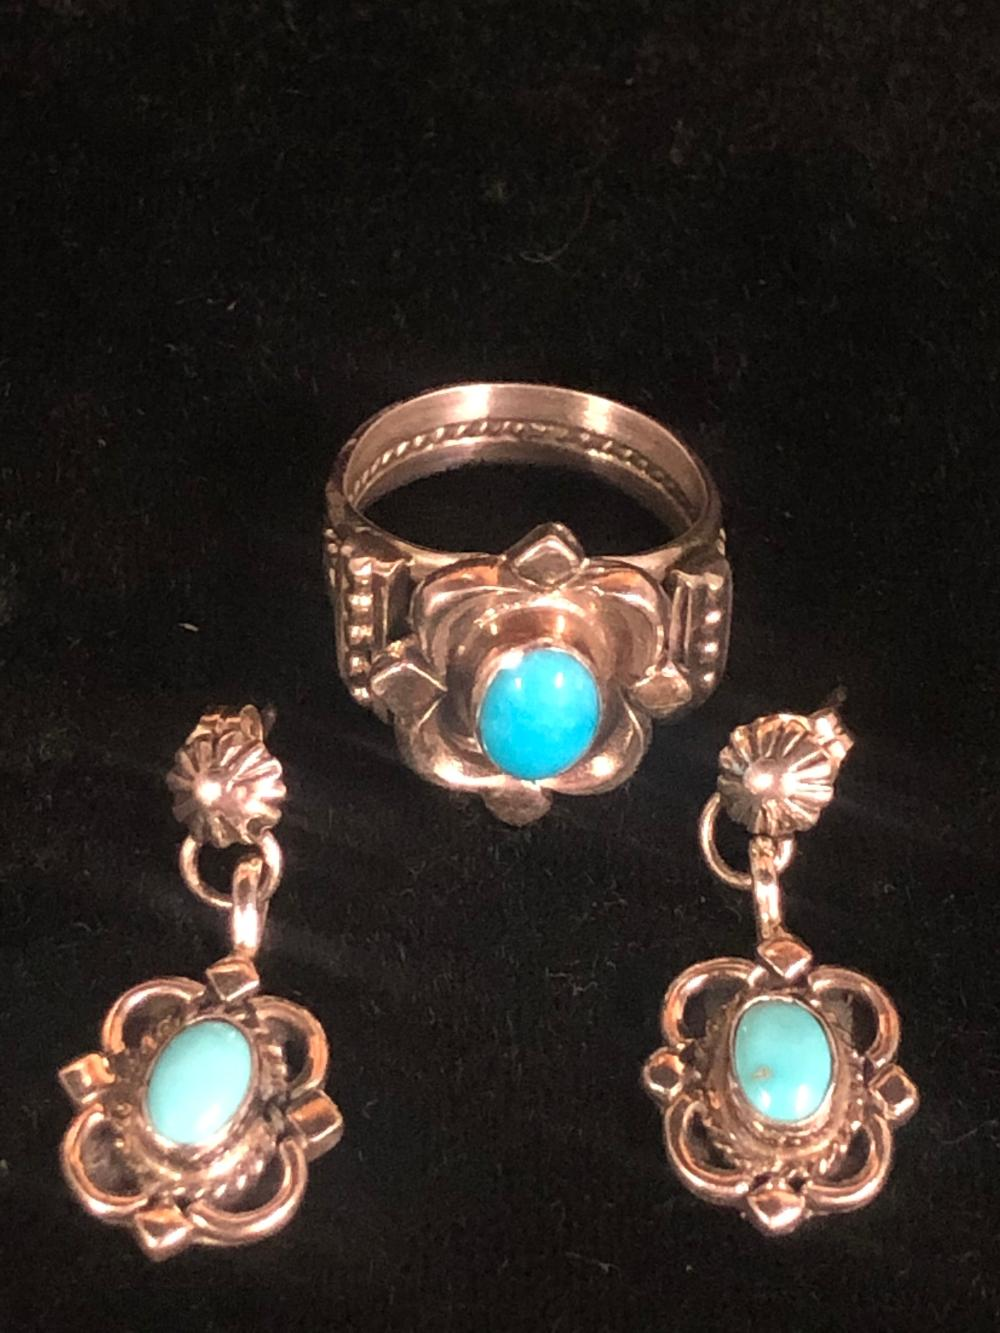 Turquoise sterling silver ring and earring 'set'